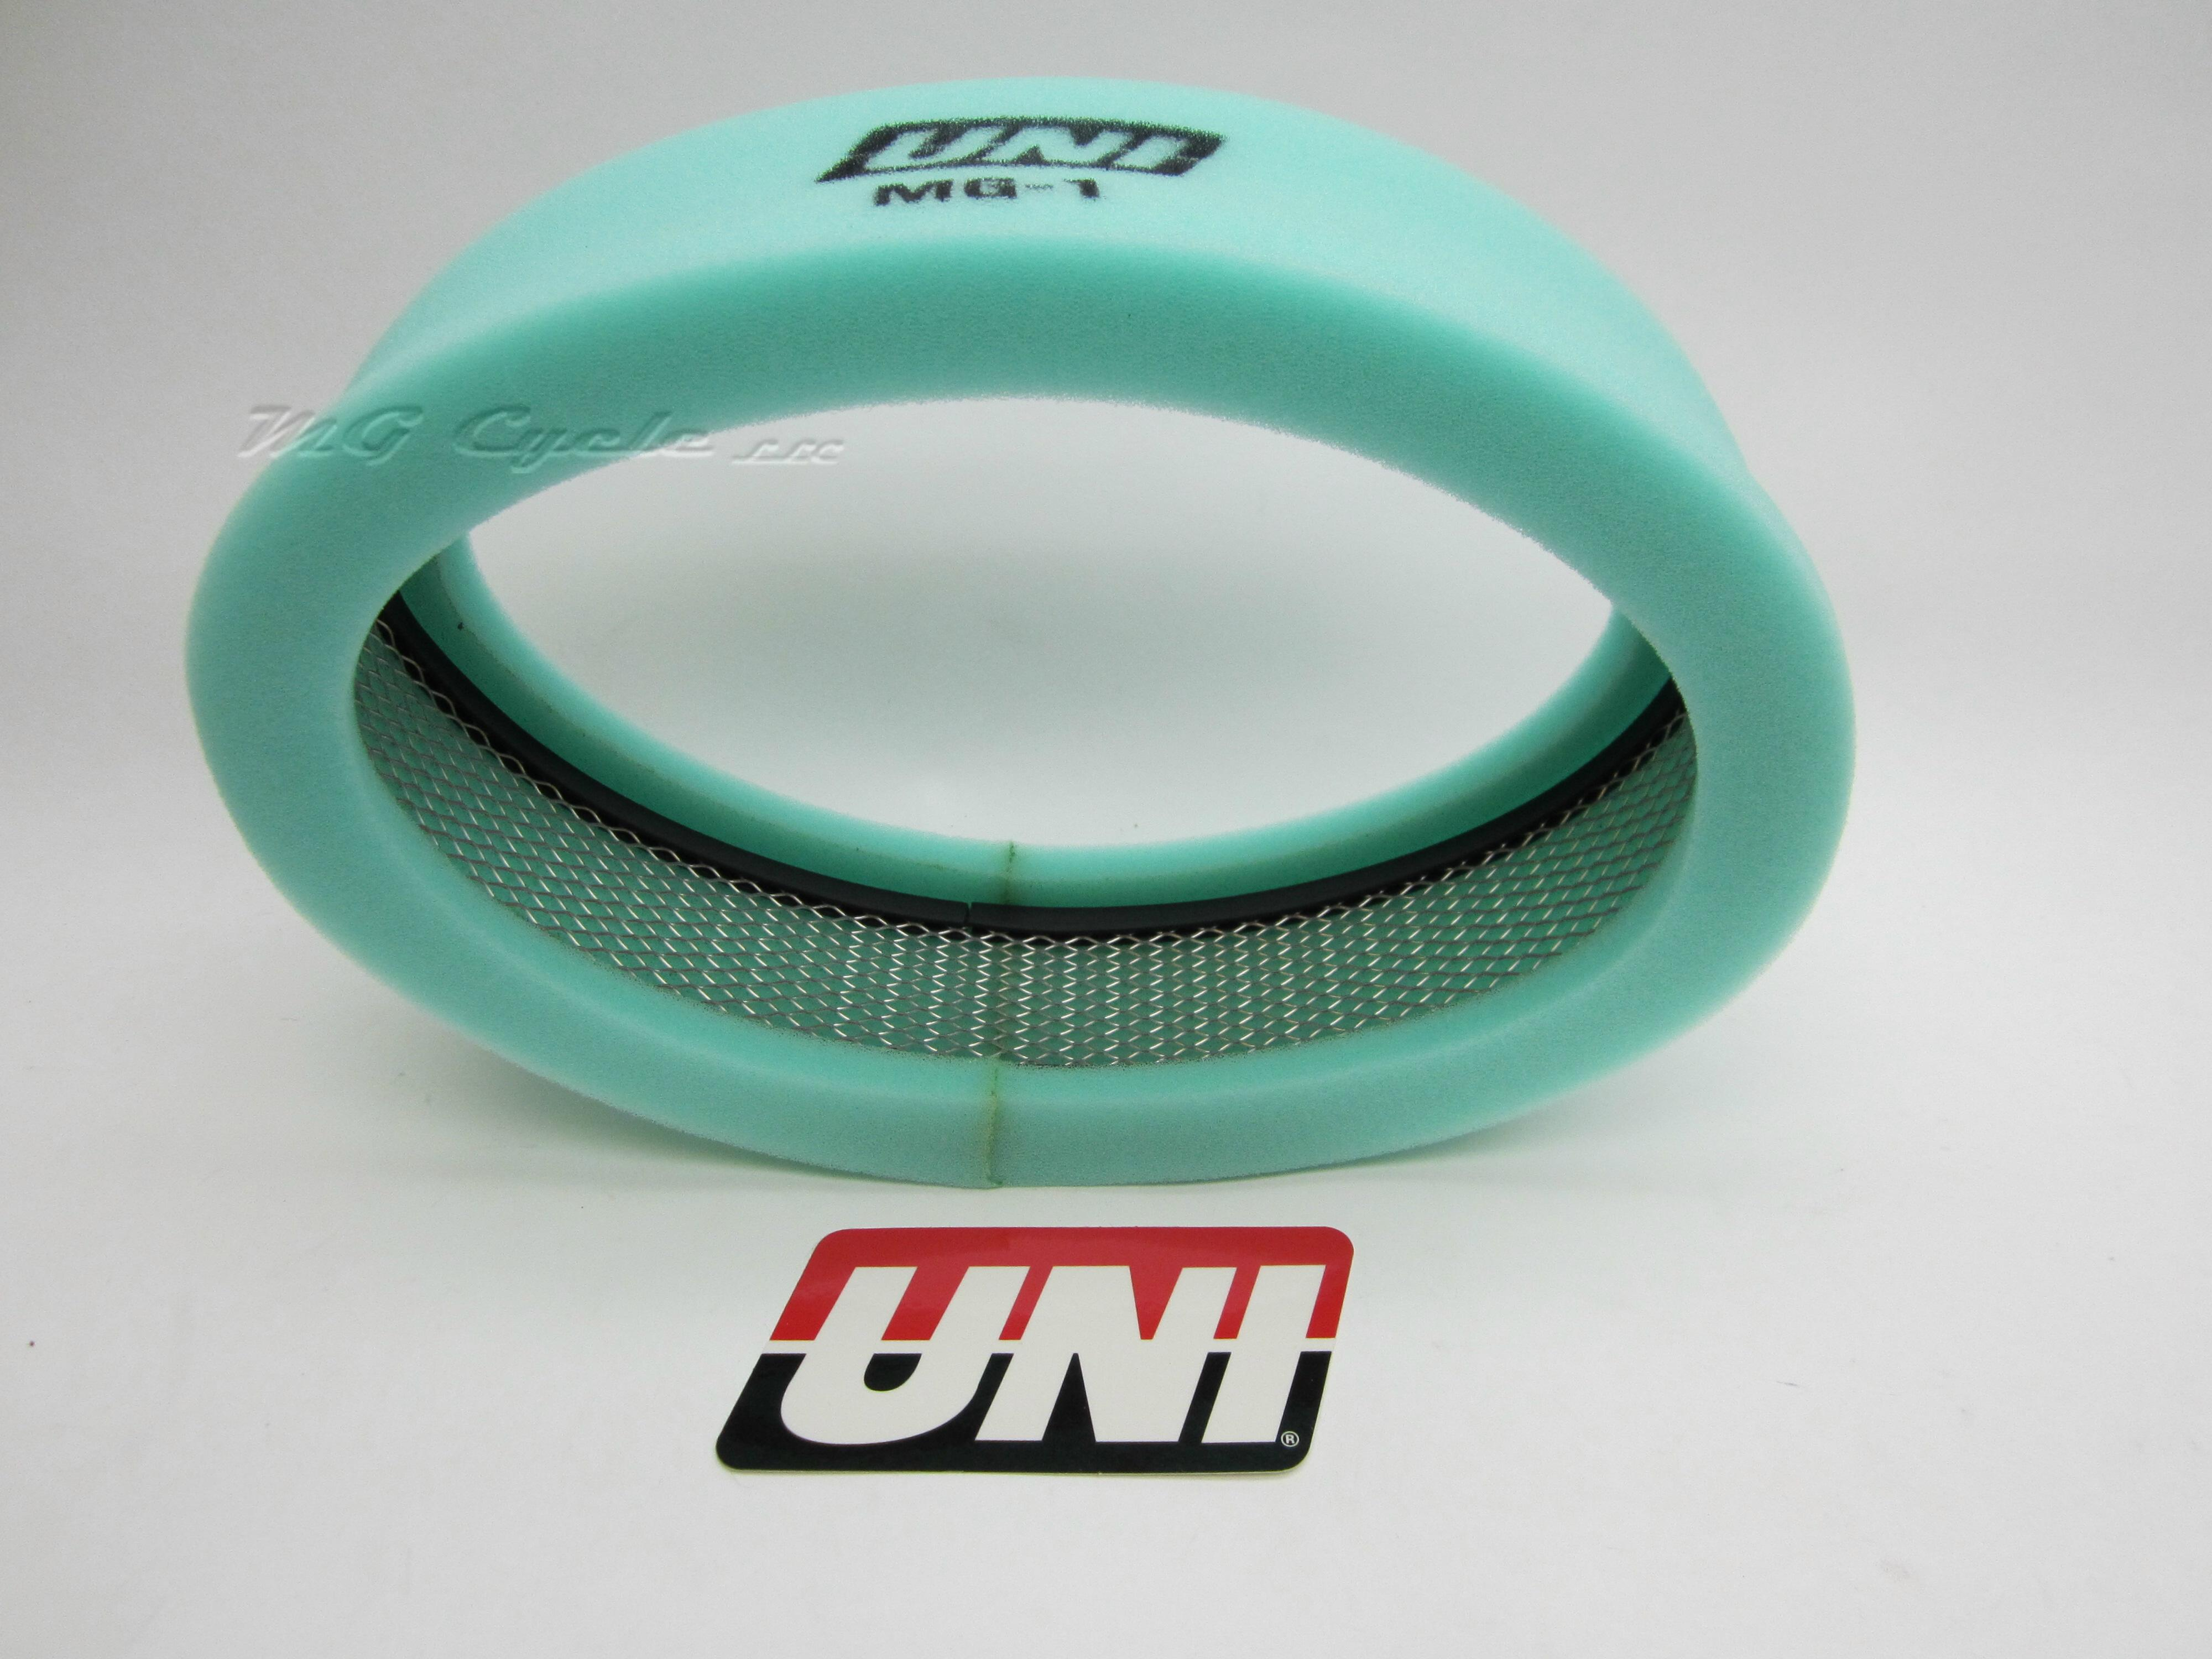 UNI air filter for original air box V700 Ambassador Eldorado